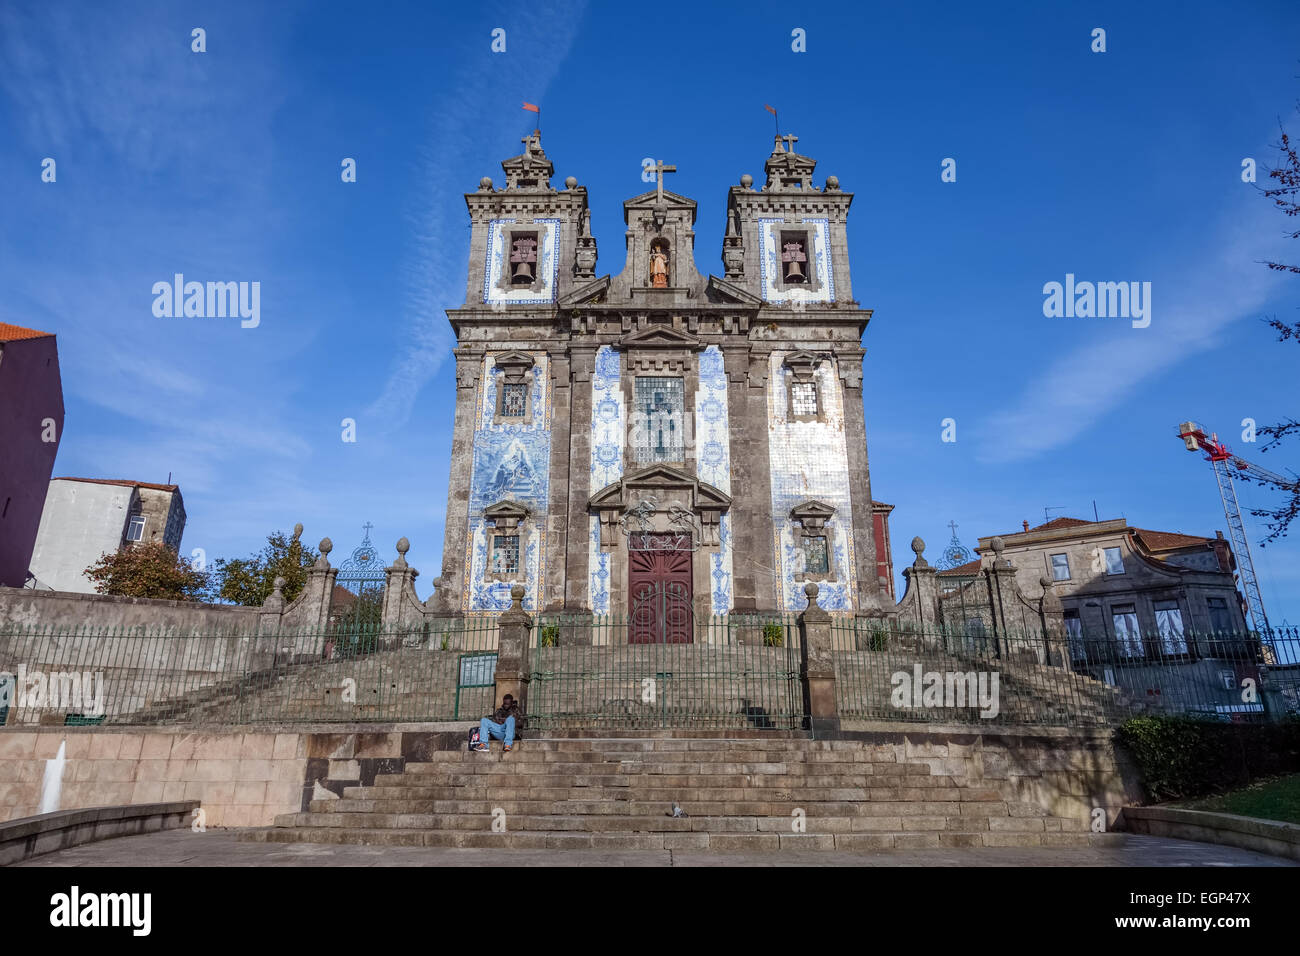 Santo Ildefonso Church in the city of Porto, Portugal. 18th century Baroque architecture, covered with Portuguese - Stock Image